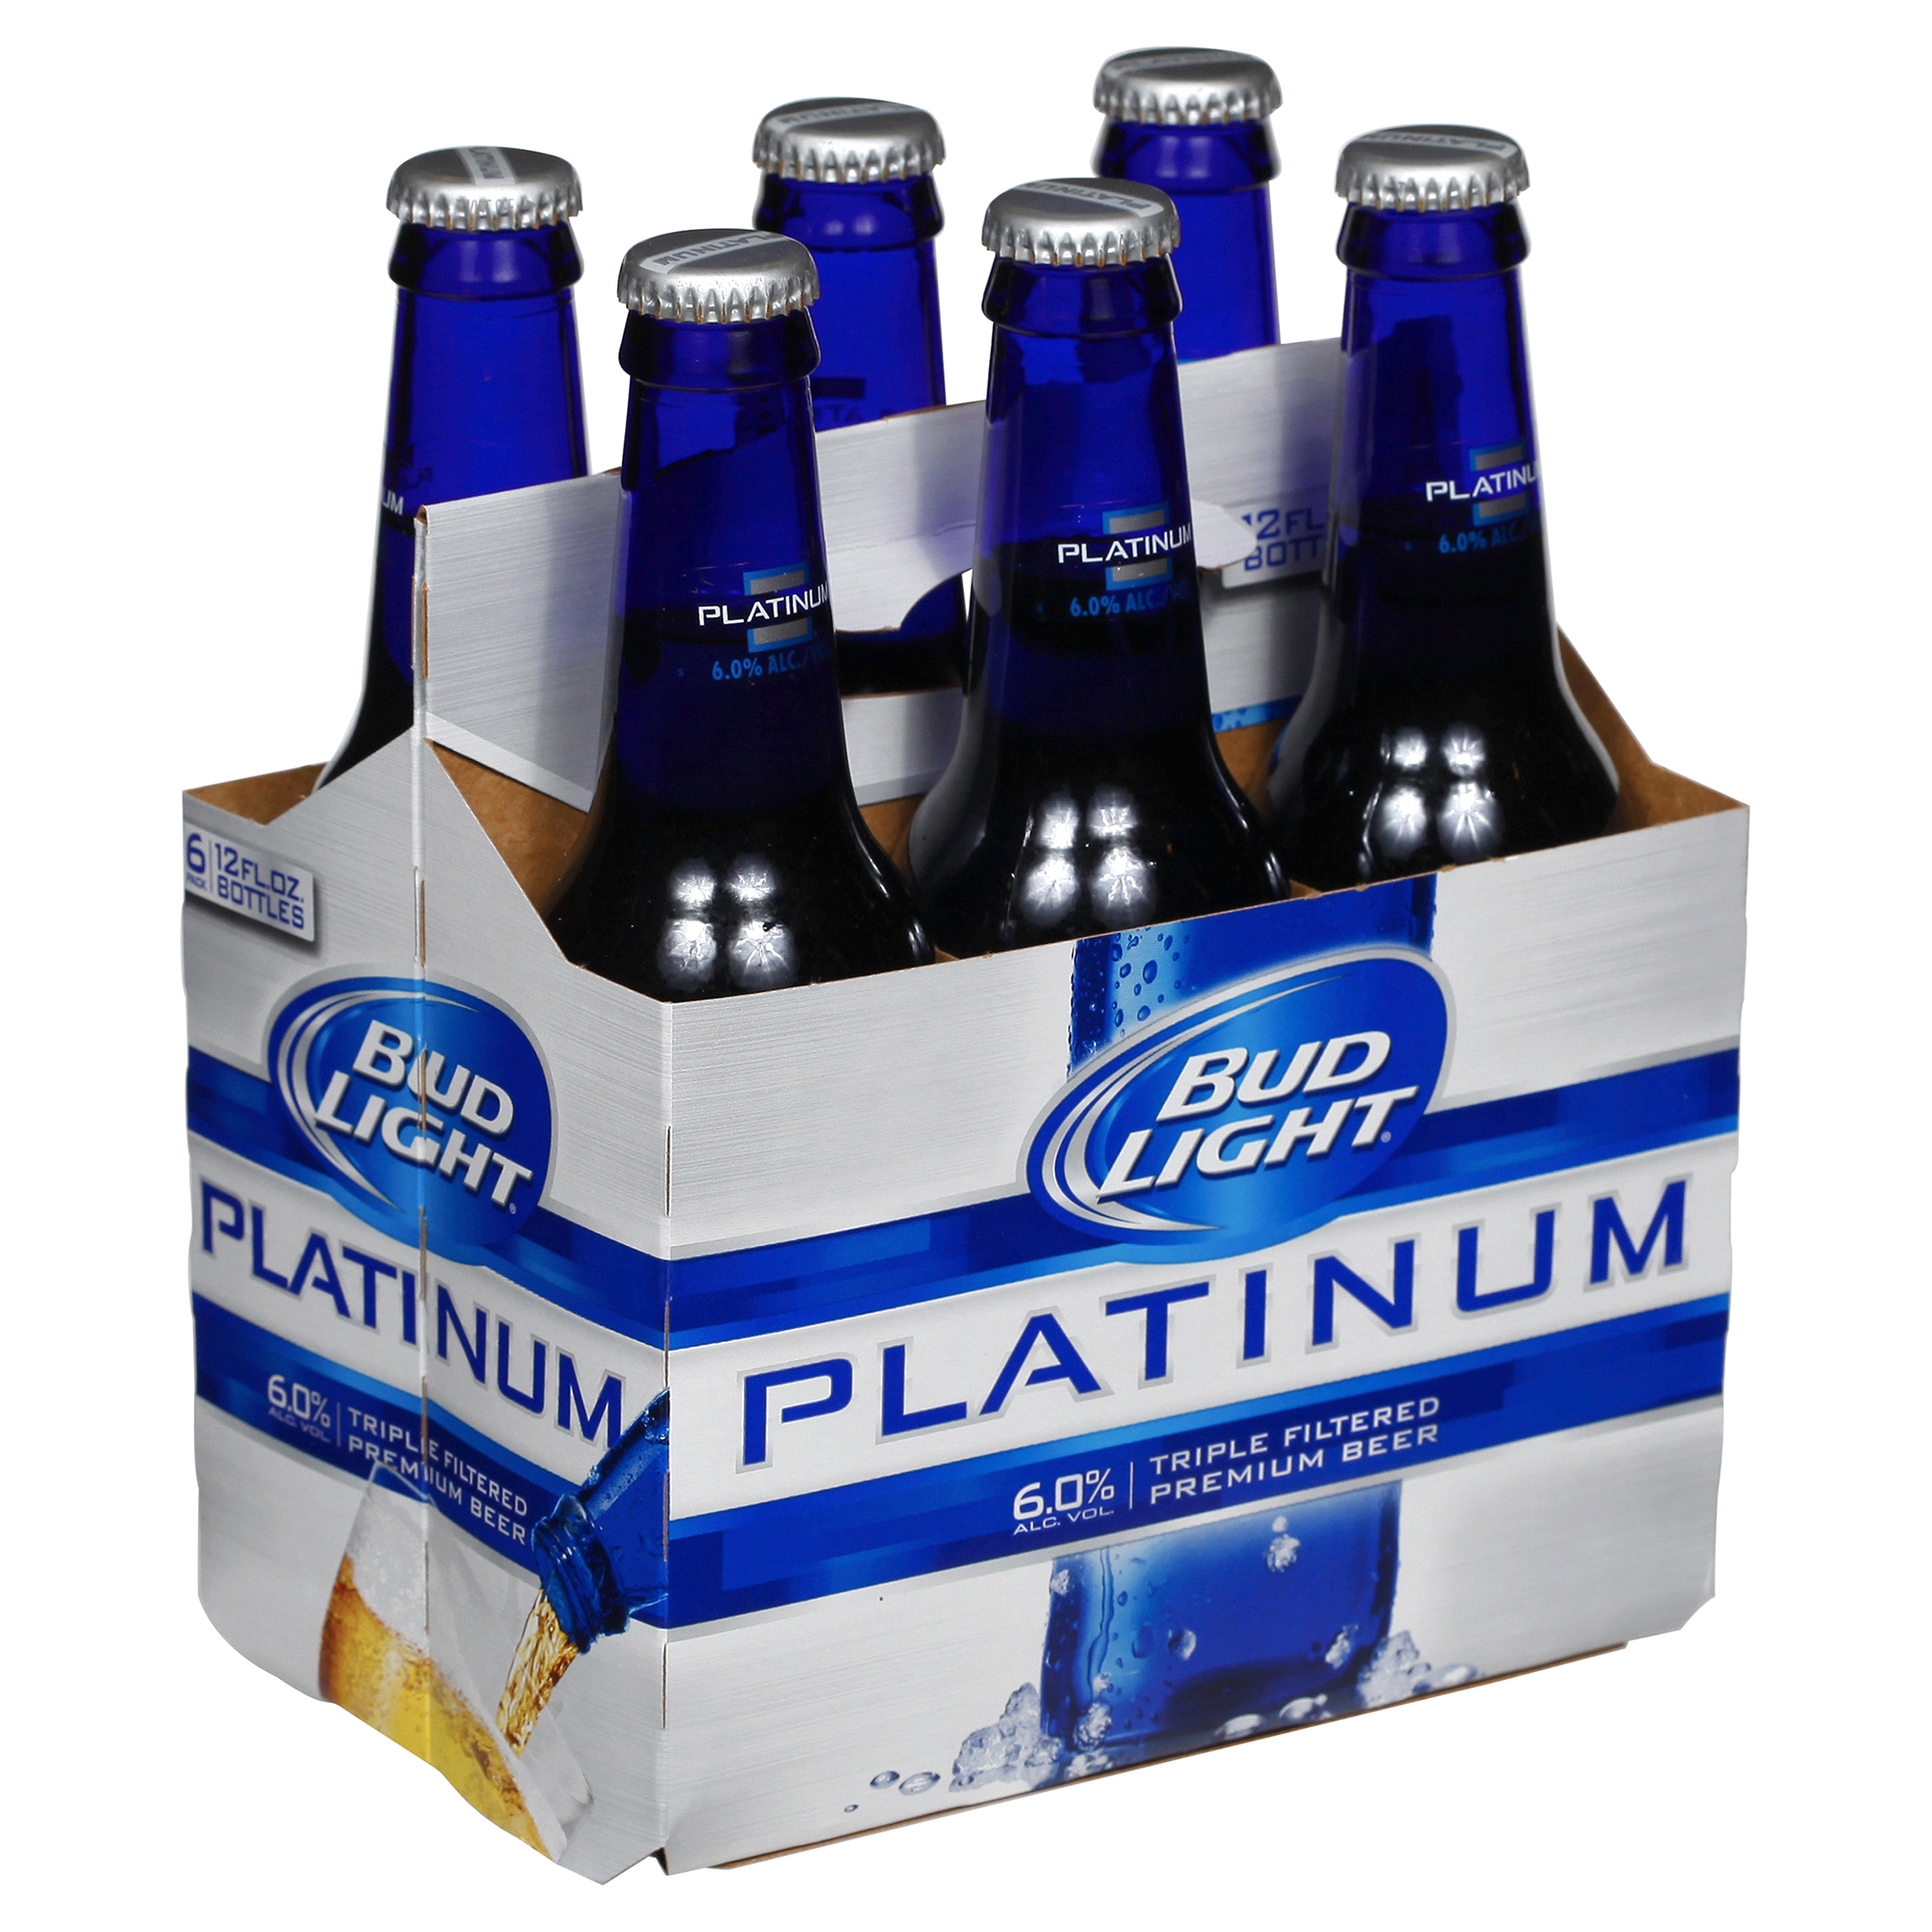 fl light oz platinum com ip beer walmart bud